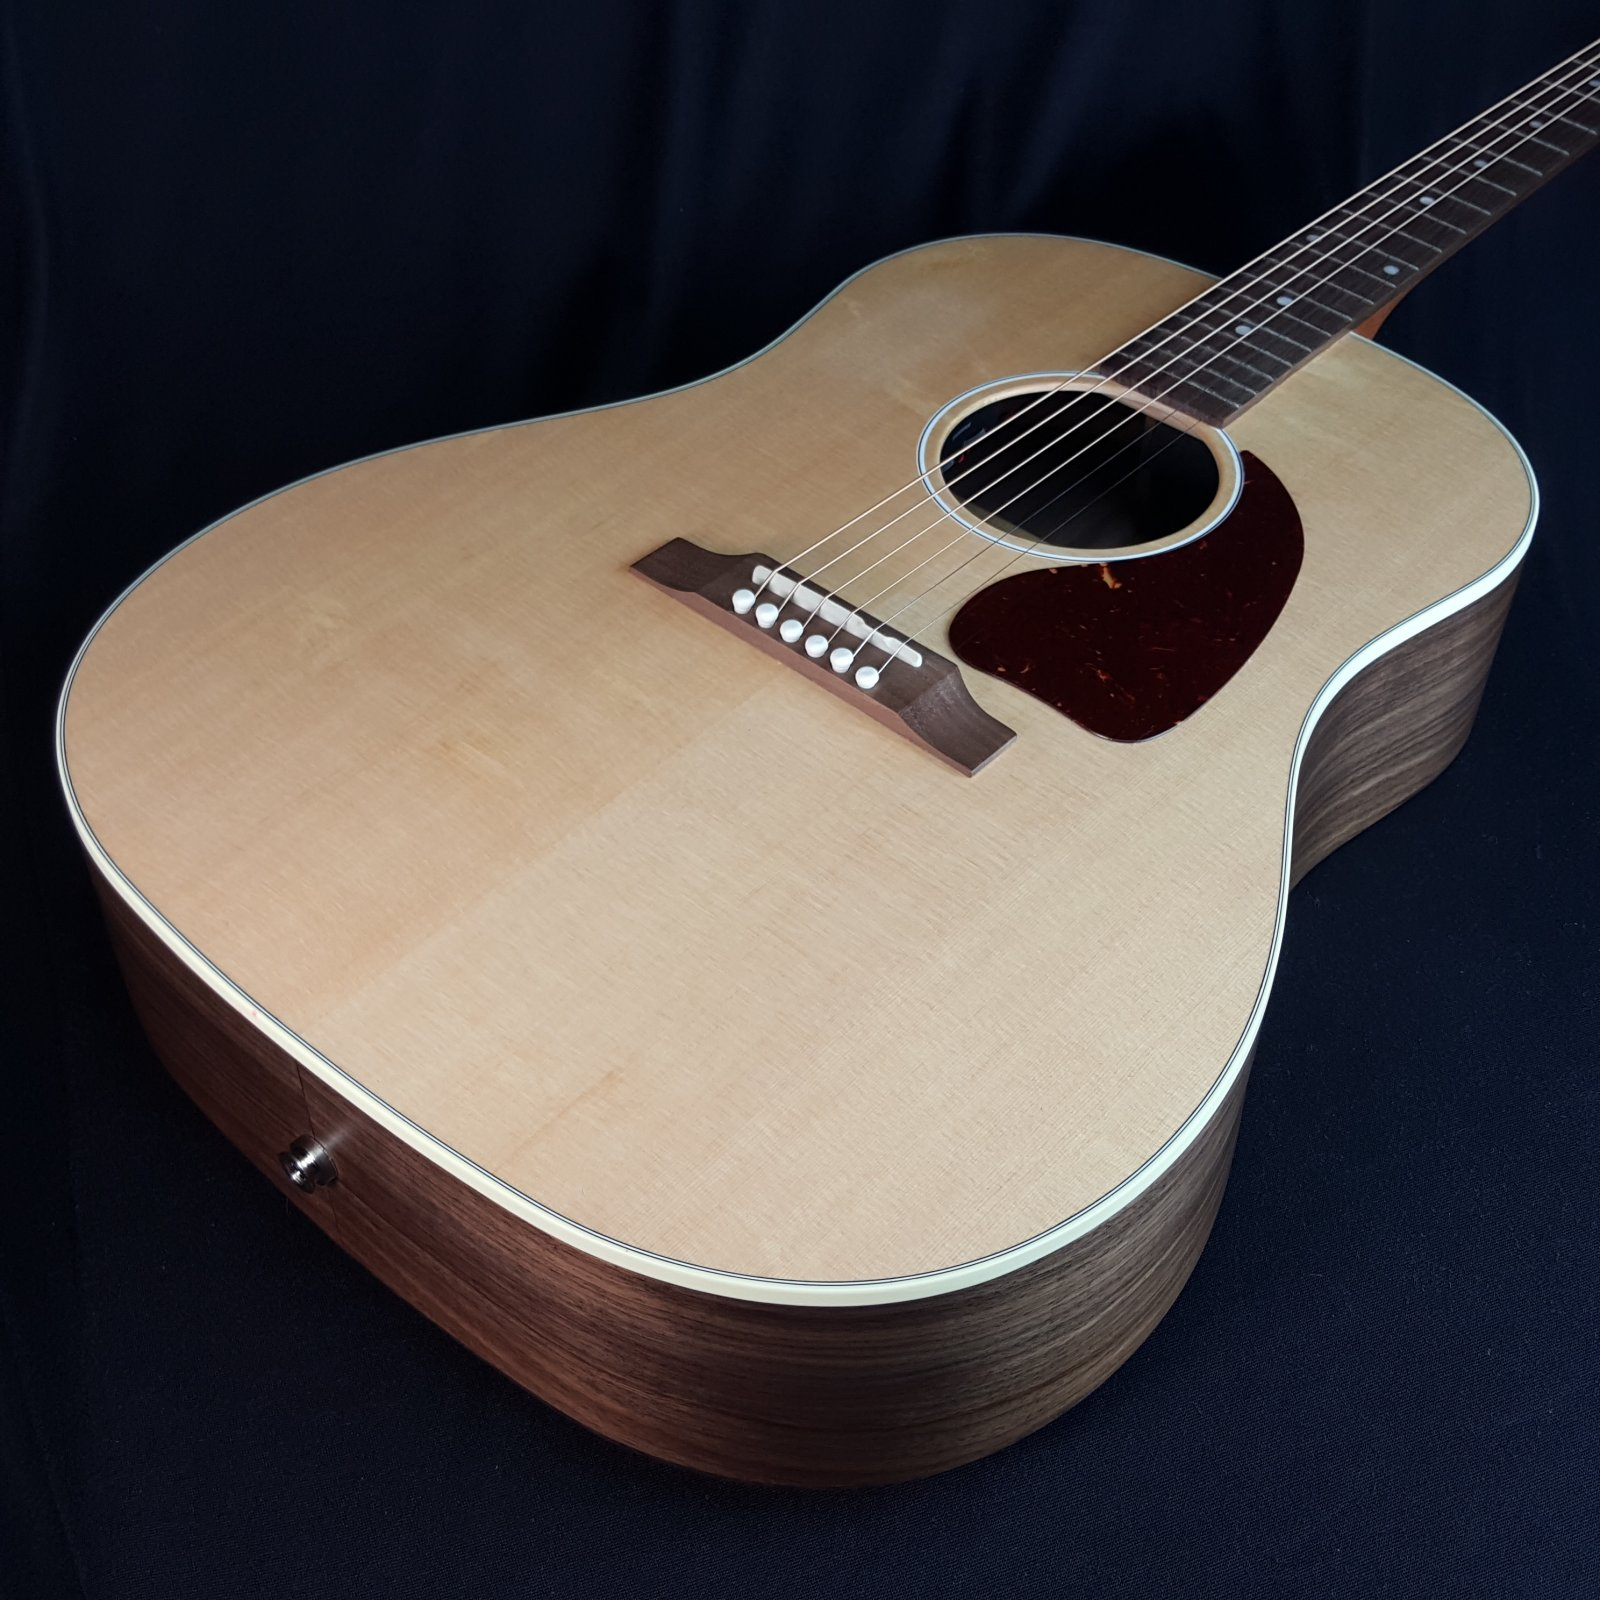 Gibson G-45 Studio Electric Acoustic Guitar Natural with Case